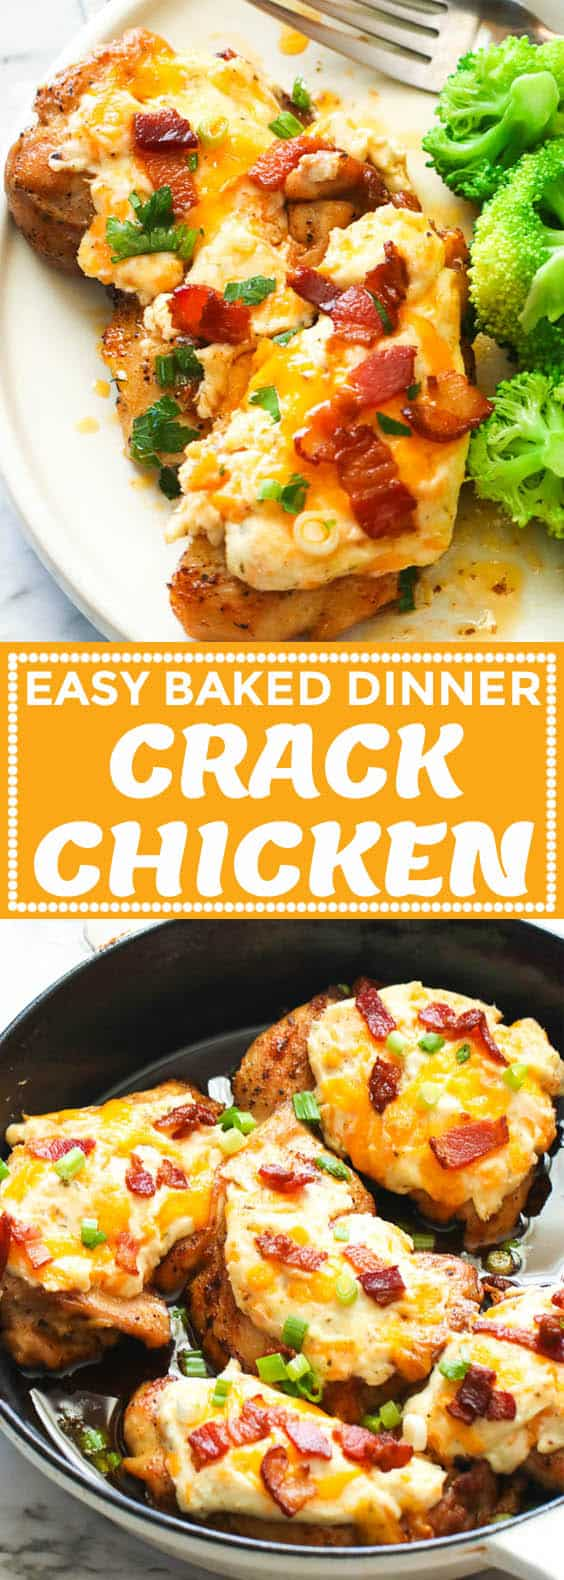 Crack Chicken